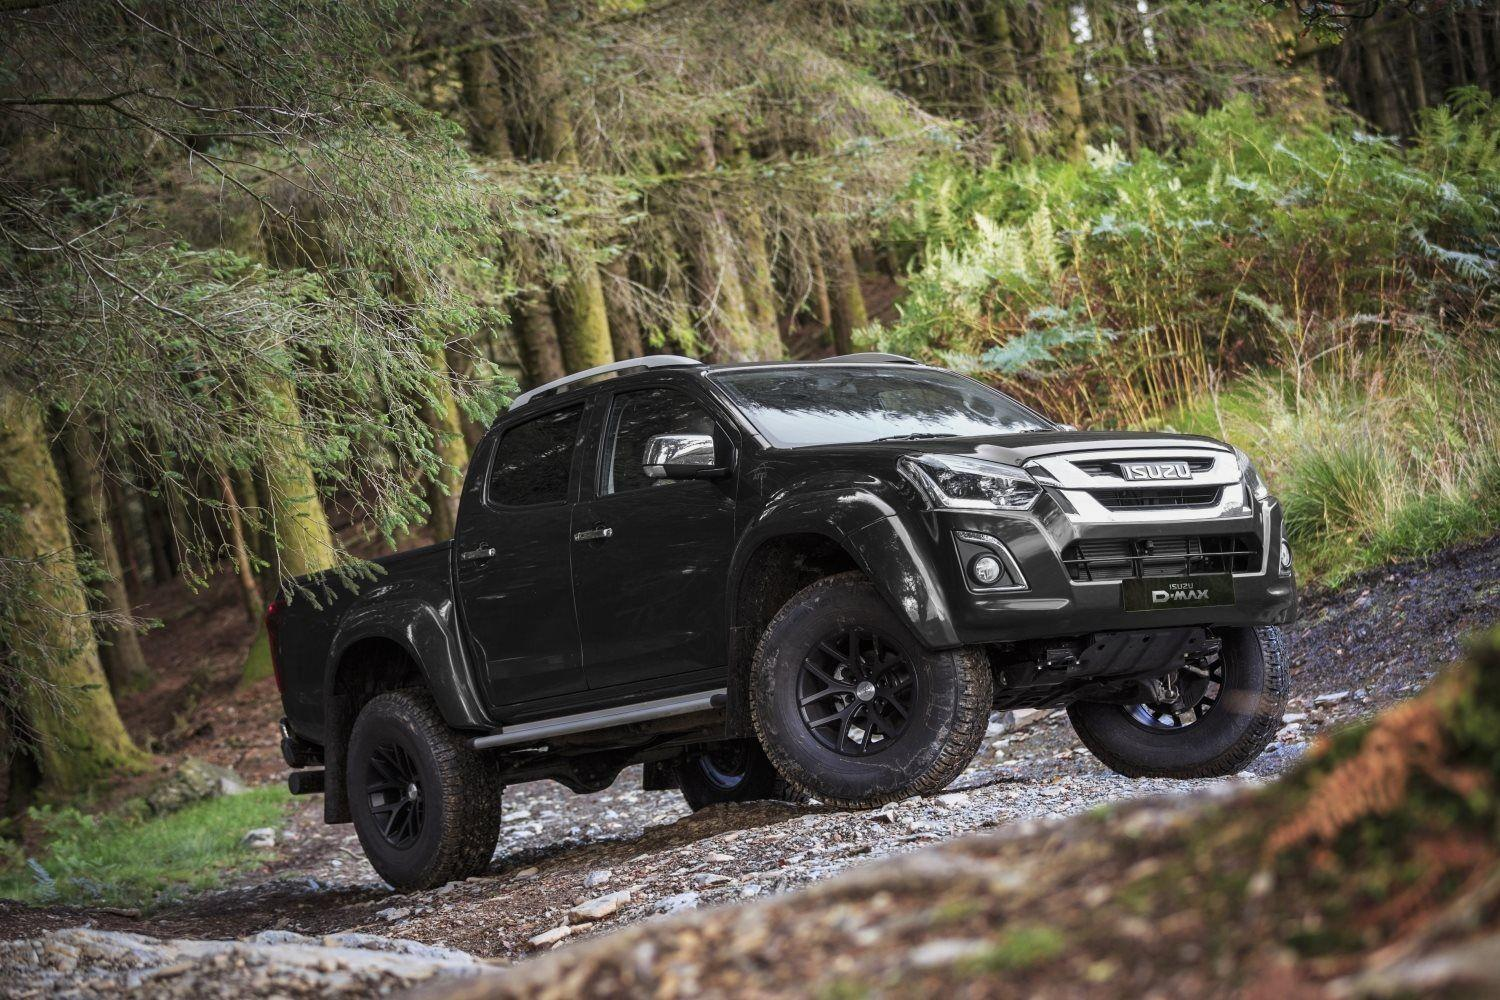 THE NEW ISUZU D-MAX ARCTIC TRUCKS AT35 WILL GO FAR